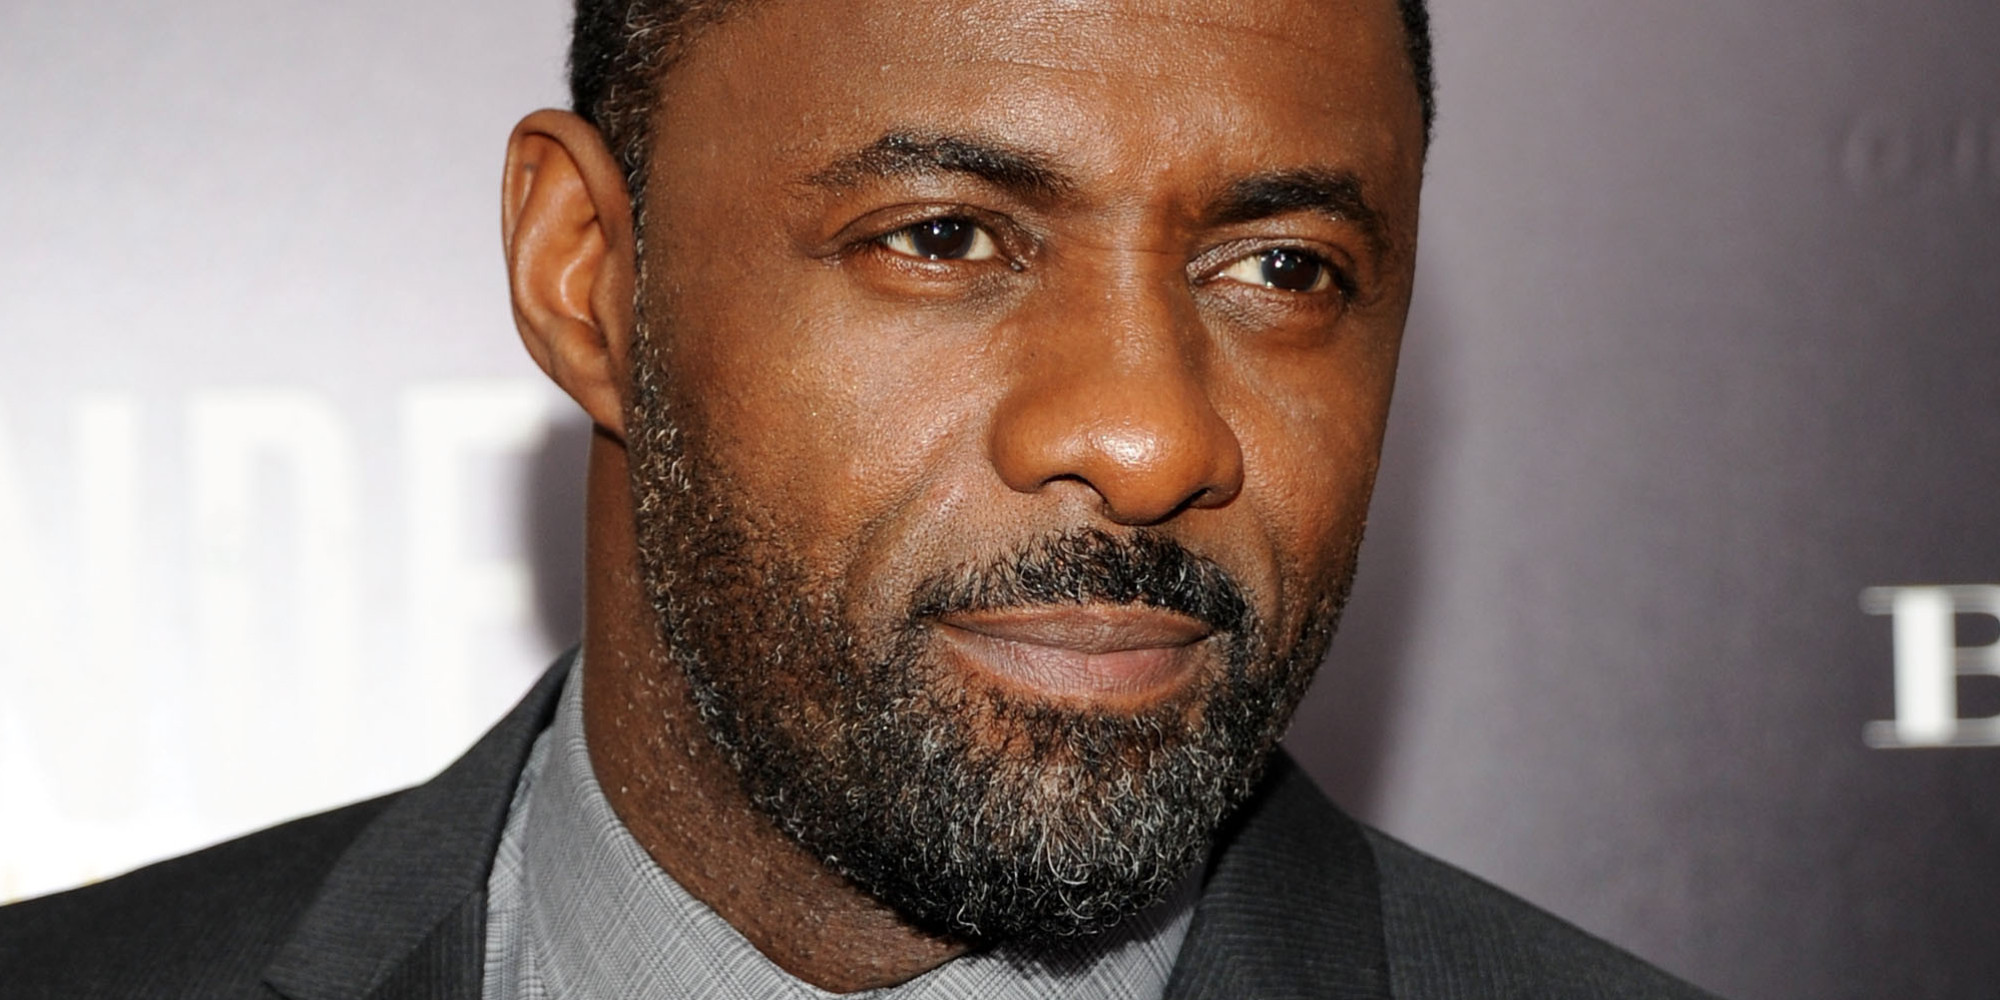 The 45-year old son of father Winston Elba and mother Eve Elba, 190 cm tall Idris Elba in 2018 photo